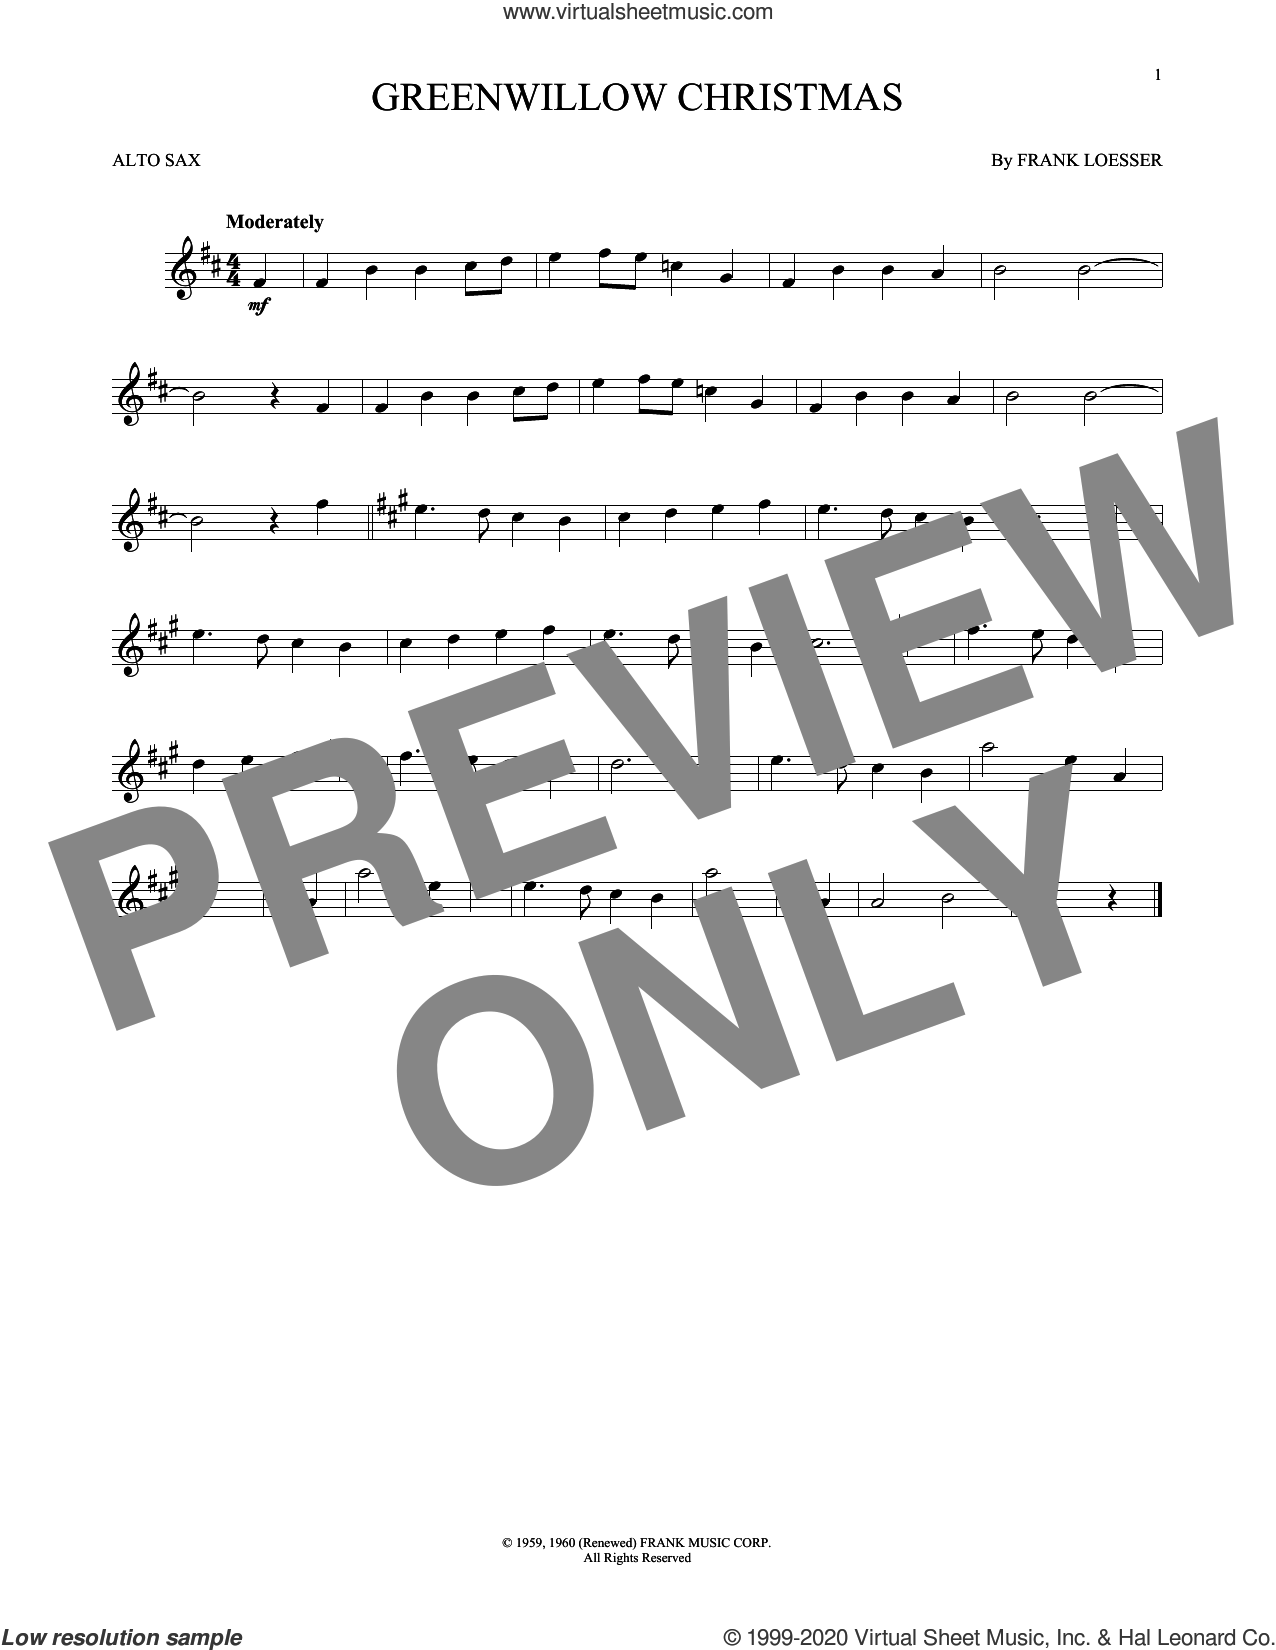 Greenwillow Christmas sheet music for alto saxophone solo by Frank Loesser, intermediate skill level